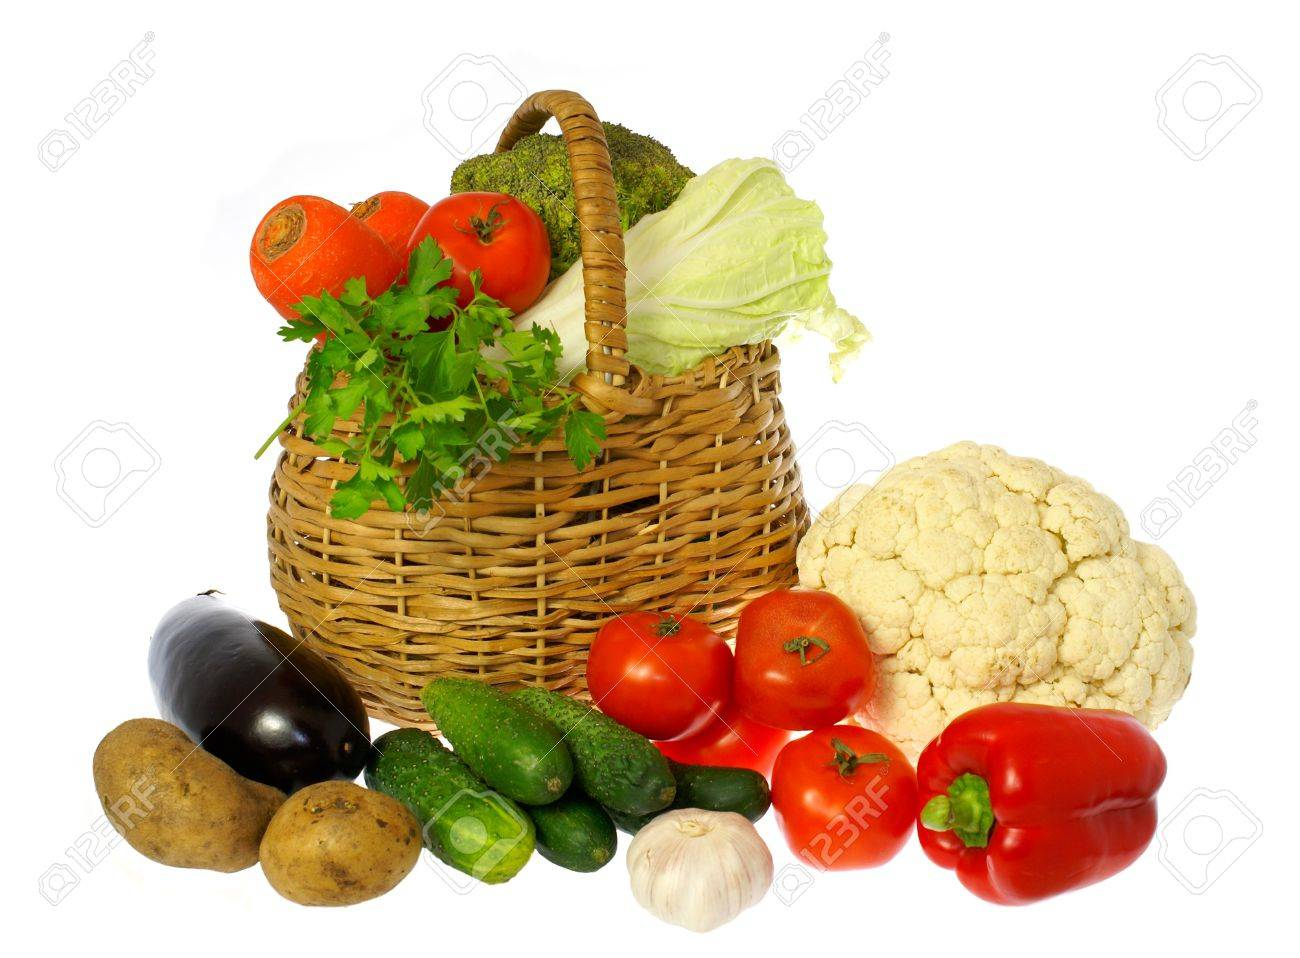 Vegetables and basket Stock Photo - 1253836